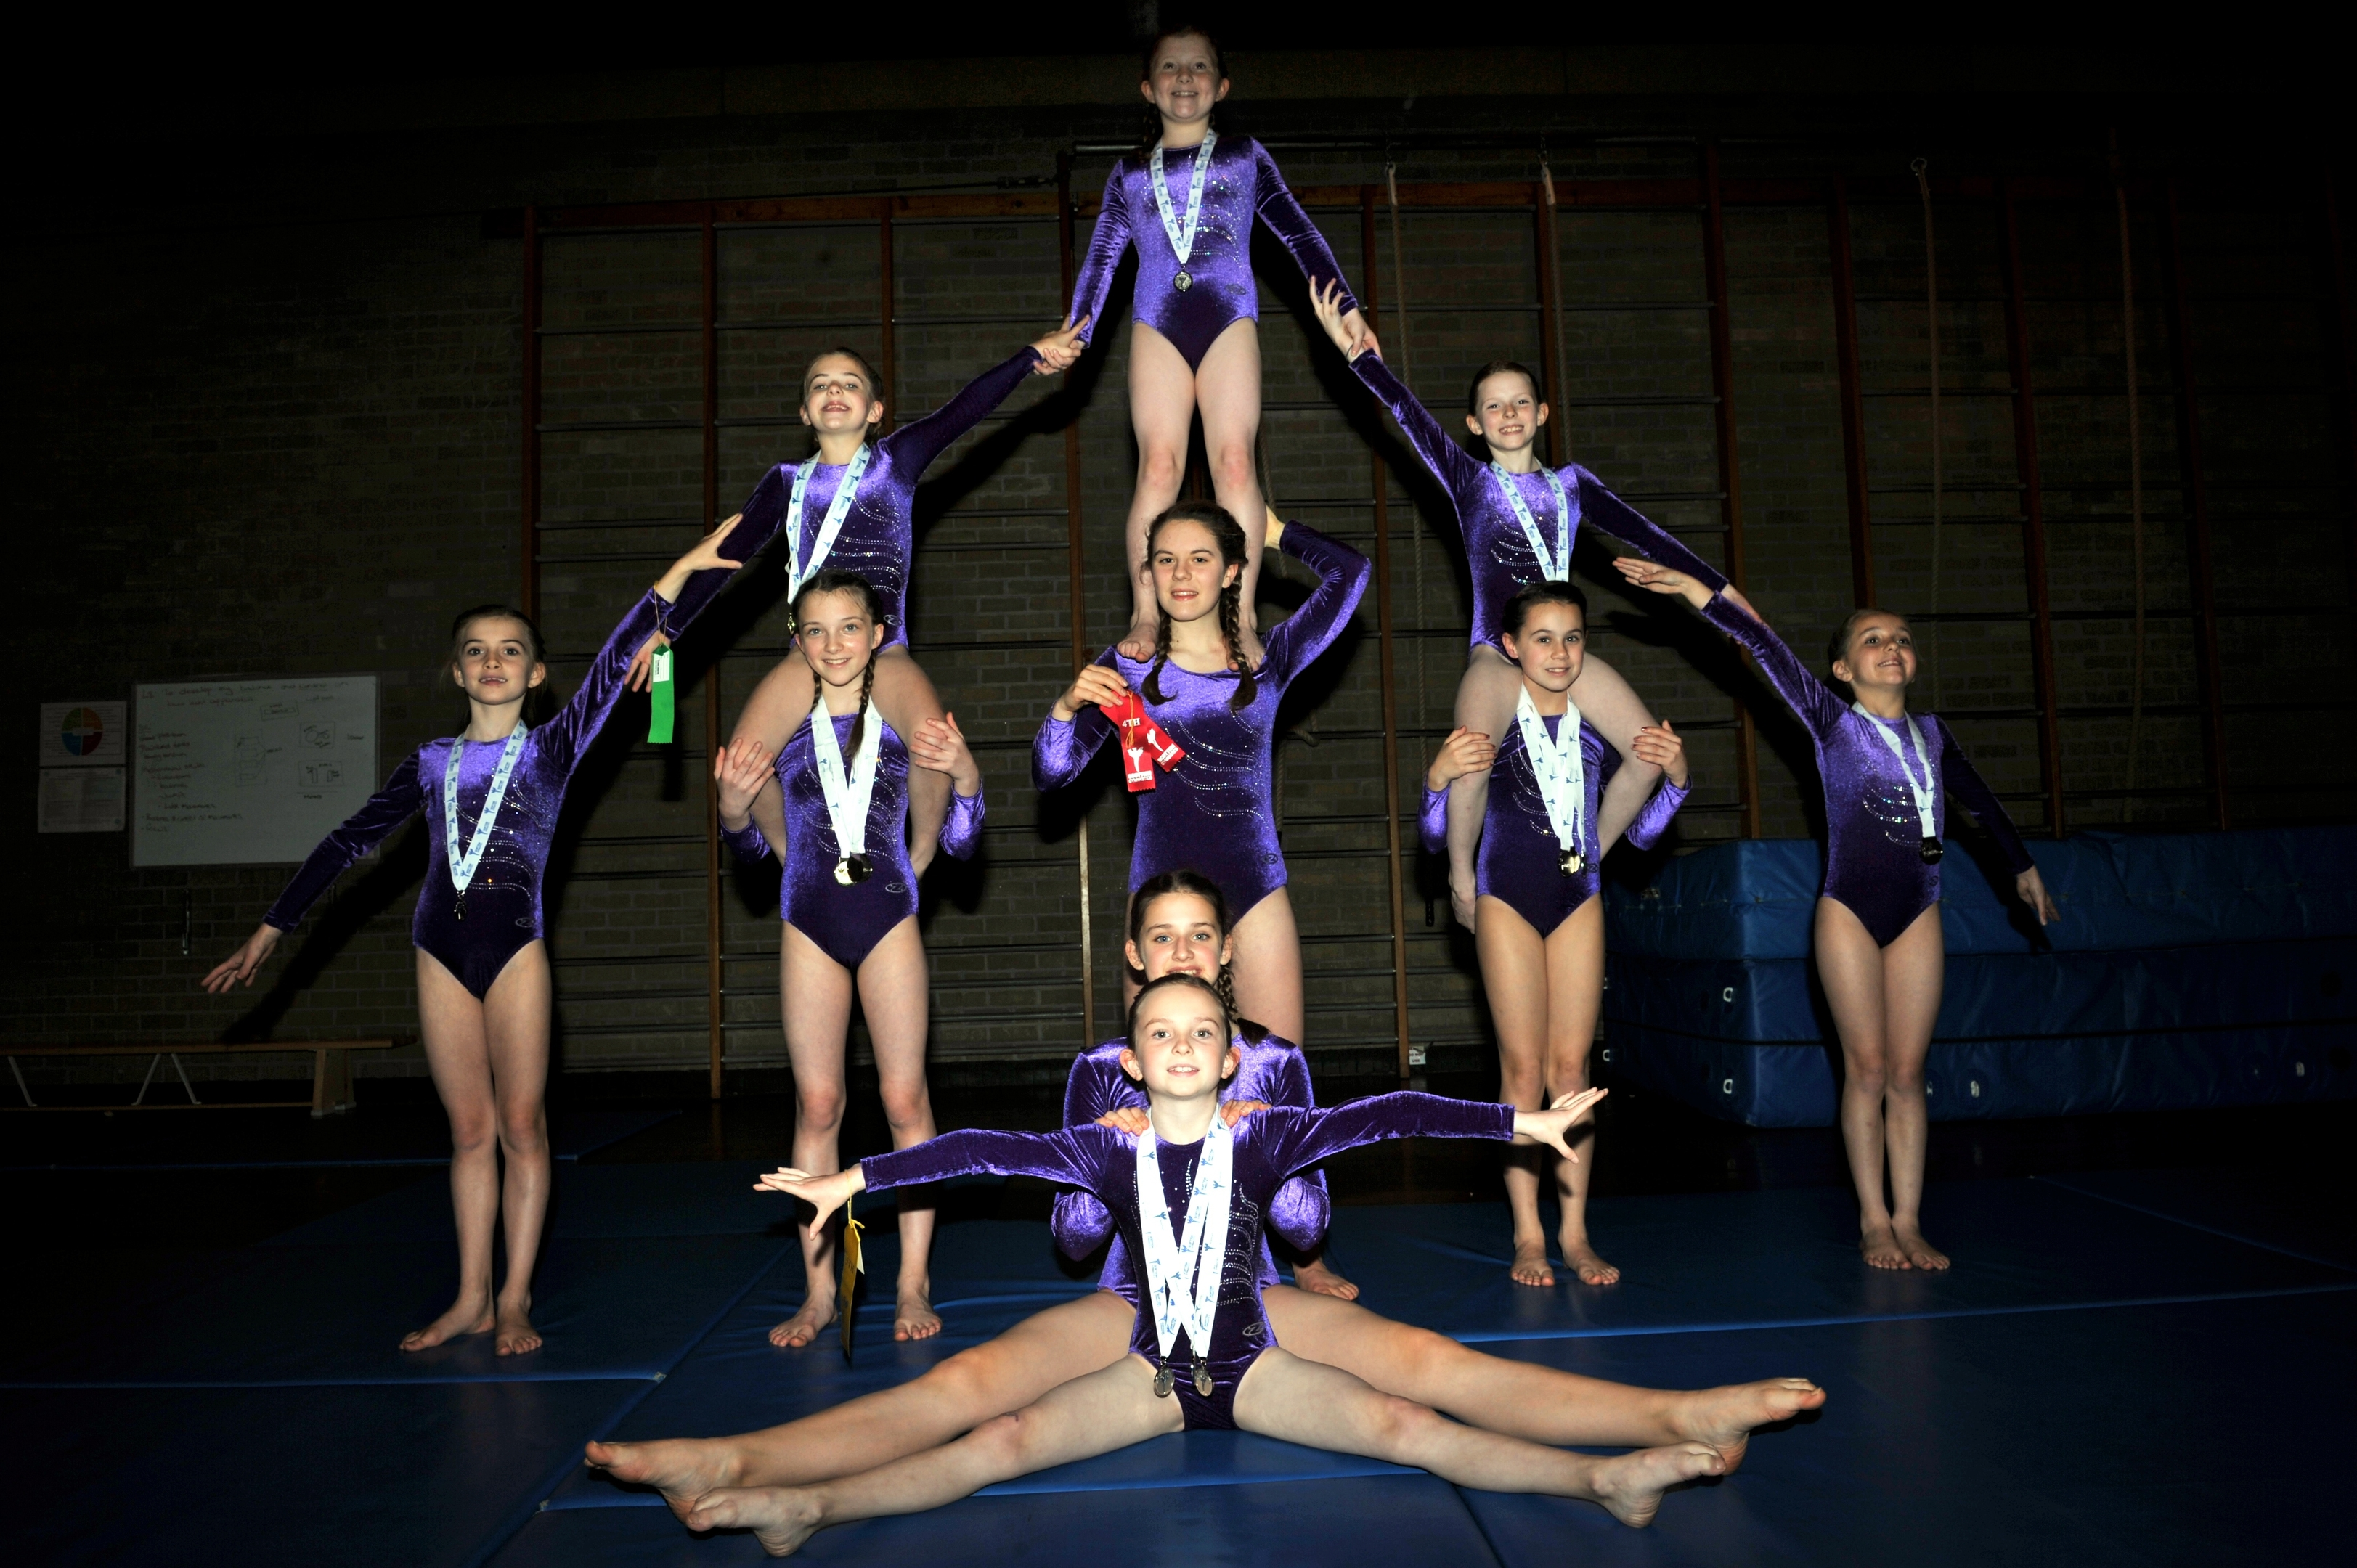 Members of the Forres Gymnastics Club pose during training at their gymnasium, after winning medals in their last competition Picture by Gordon Lennox